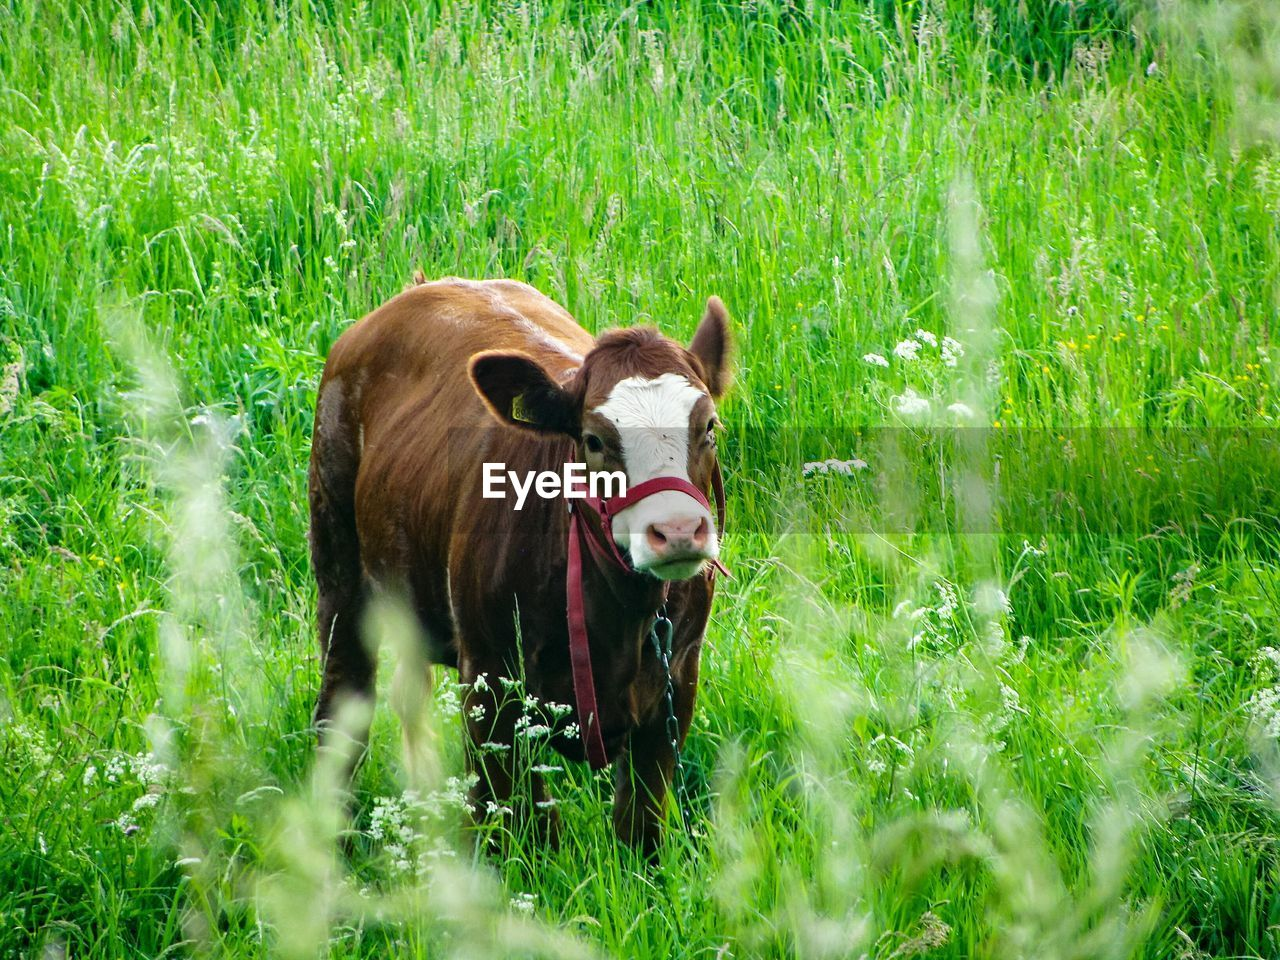 mammal, grass, domestic, plant, animal themes, animal, pets, domestic animals, livestock, land, field, vertebrate, green color, nature, one animal, no people, portrait, growth, cow, looking at camera, outdoors, herbivorous